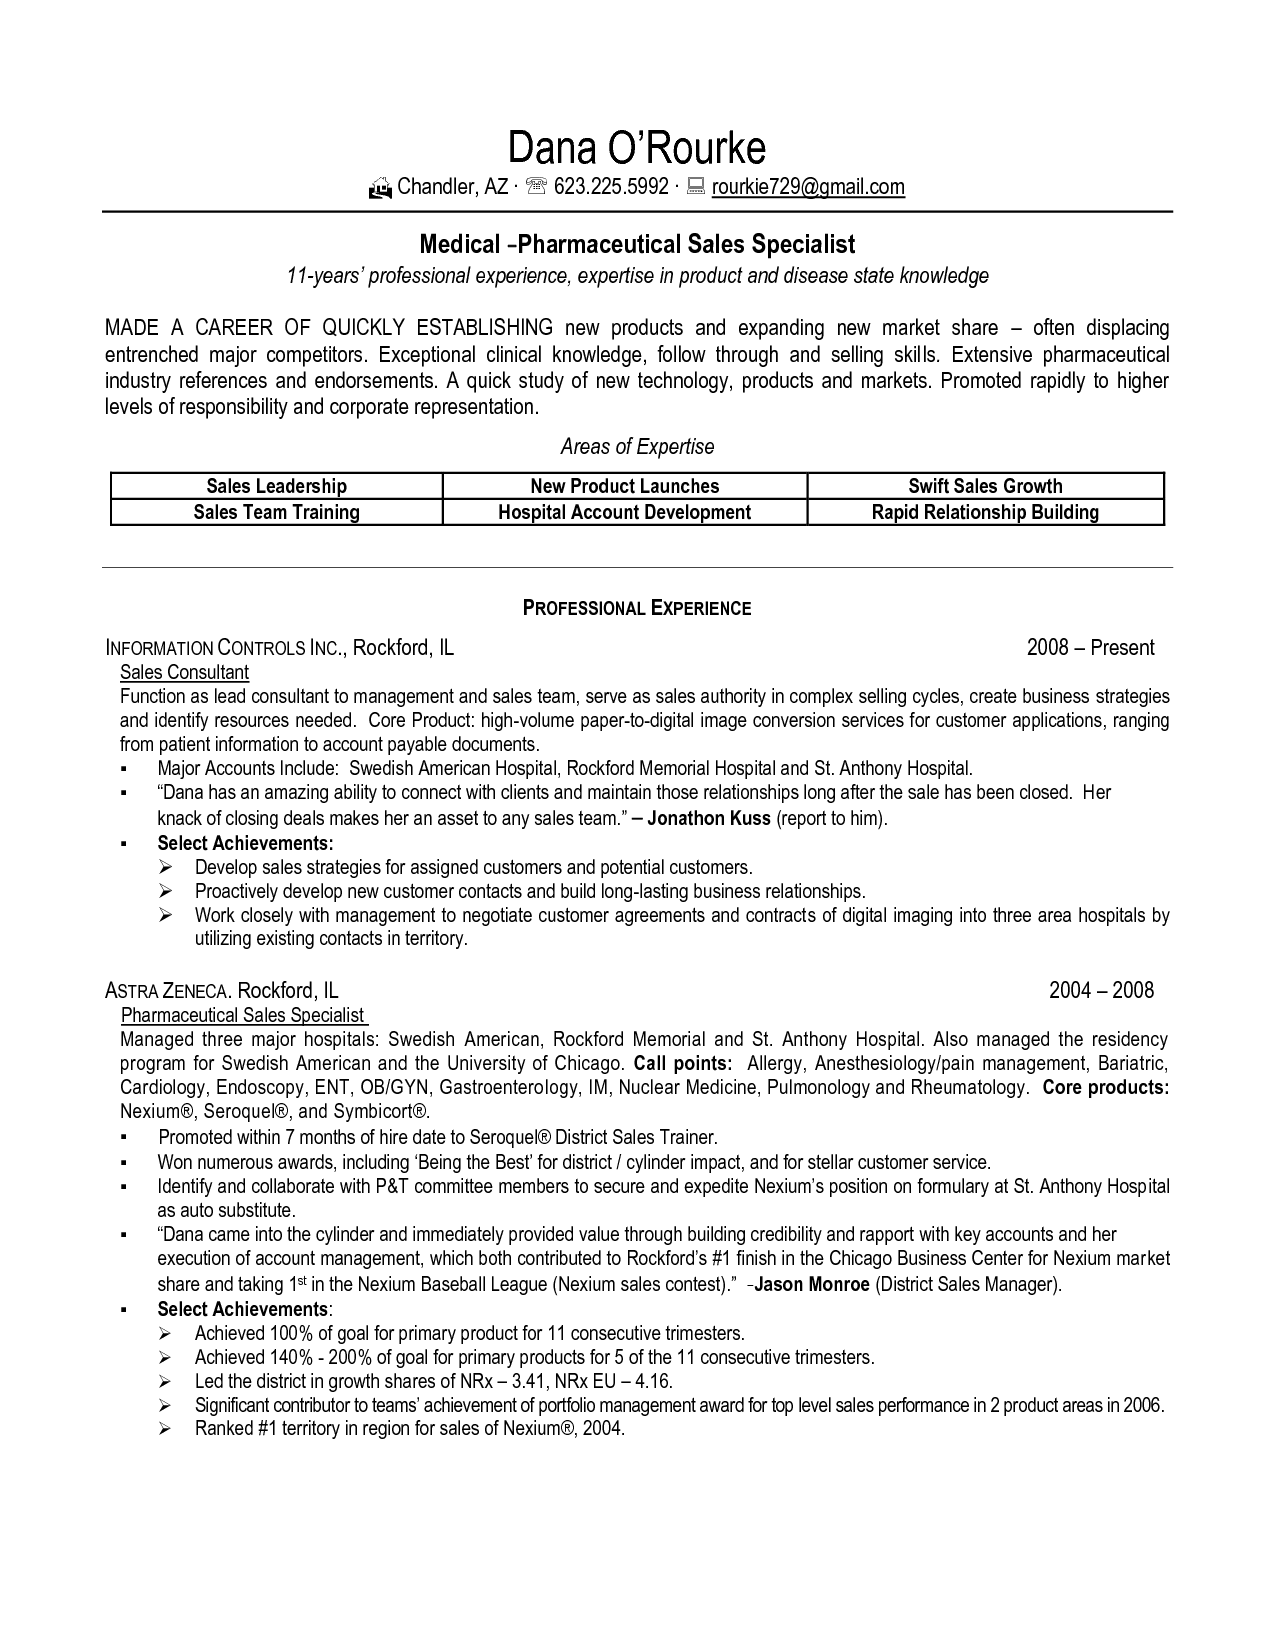 sample resume for pharmaceutical industry sample resume for pharmaceutical industry sample